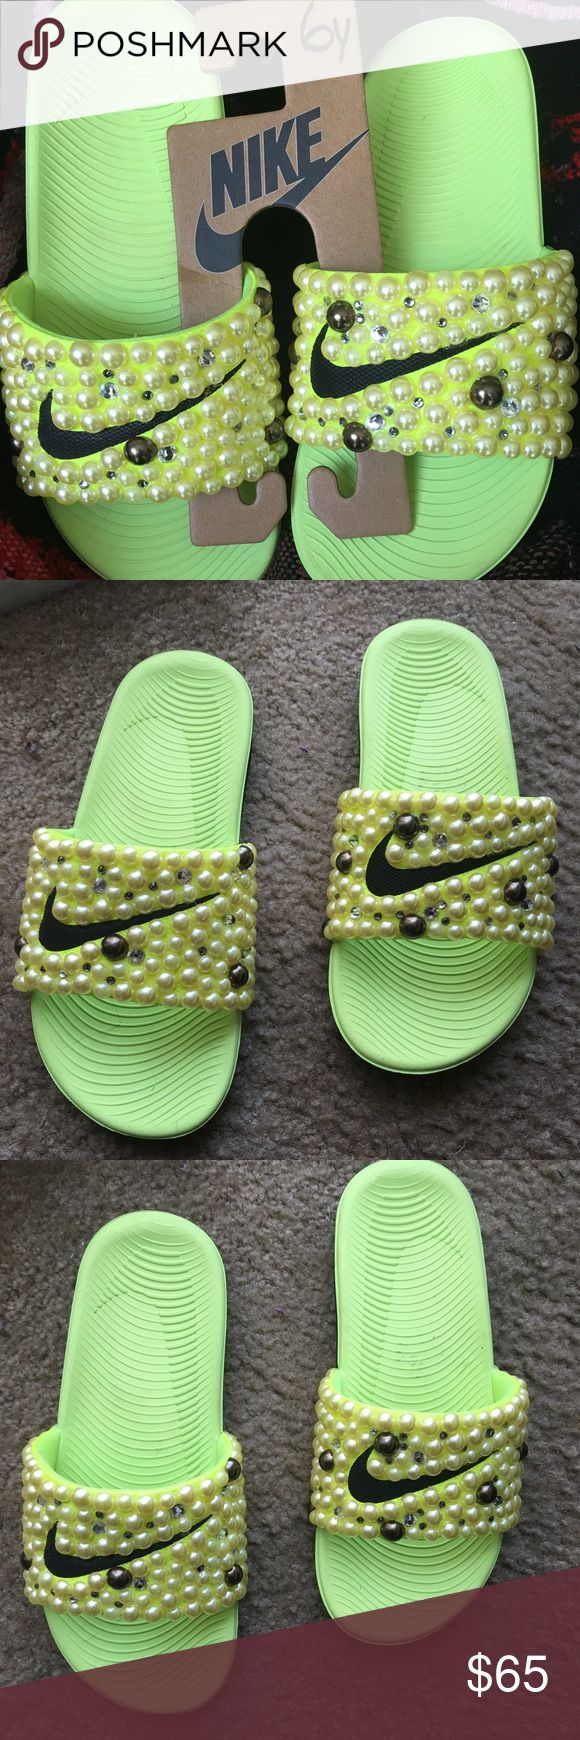 Bee Hive Nike slides Nike slides 2016 custom made with embellished pearl like stones with Swarovski crystals to give them a bling affect. Slides show a little wear. Great summer buy. Comfortable and Classy! Pre~Loved!! Great Buy!! Nike Shoes Sandals